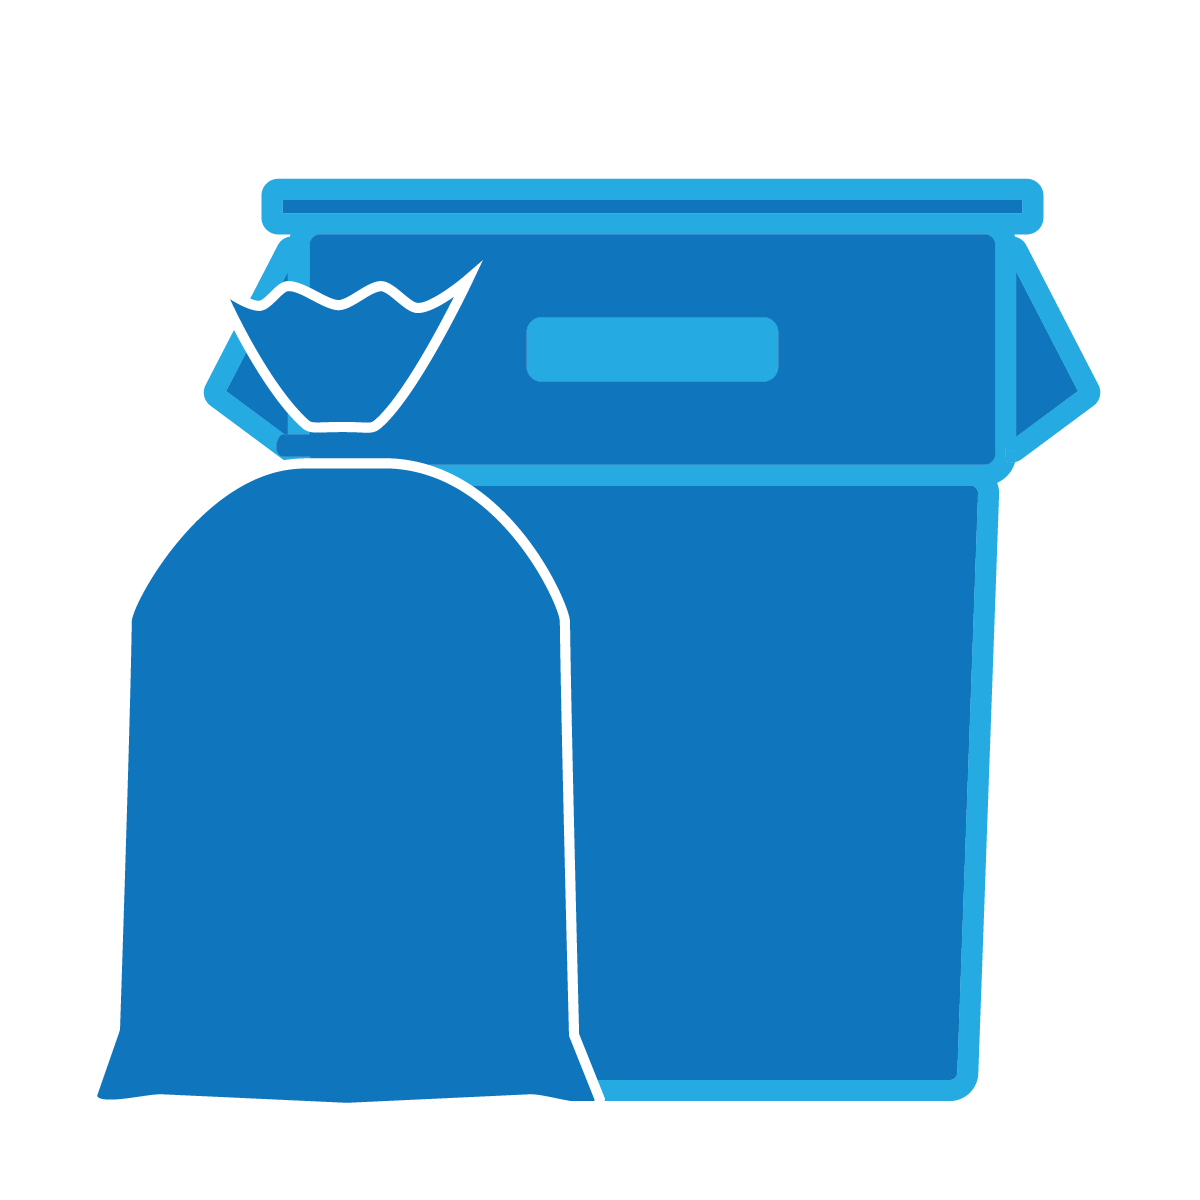 Garbage clipart household waste. Shop trash bags by